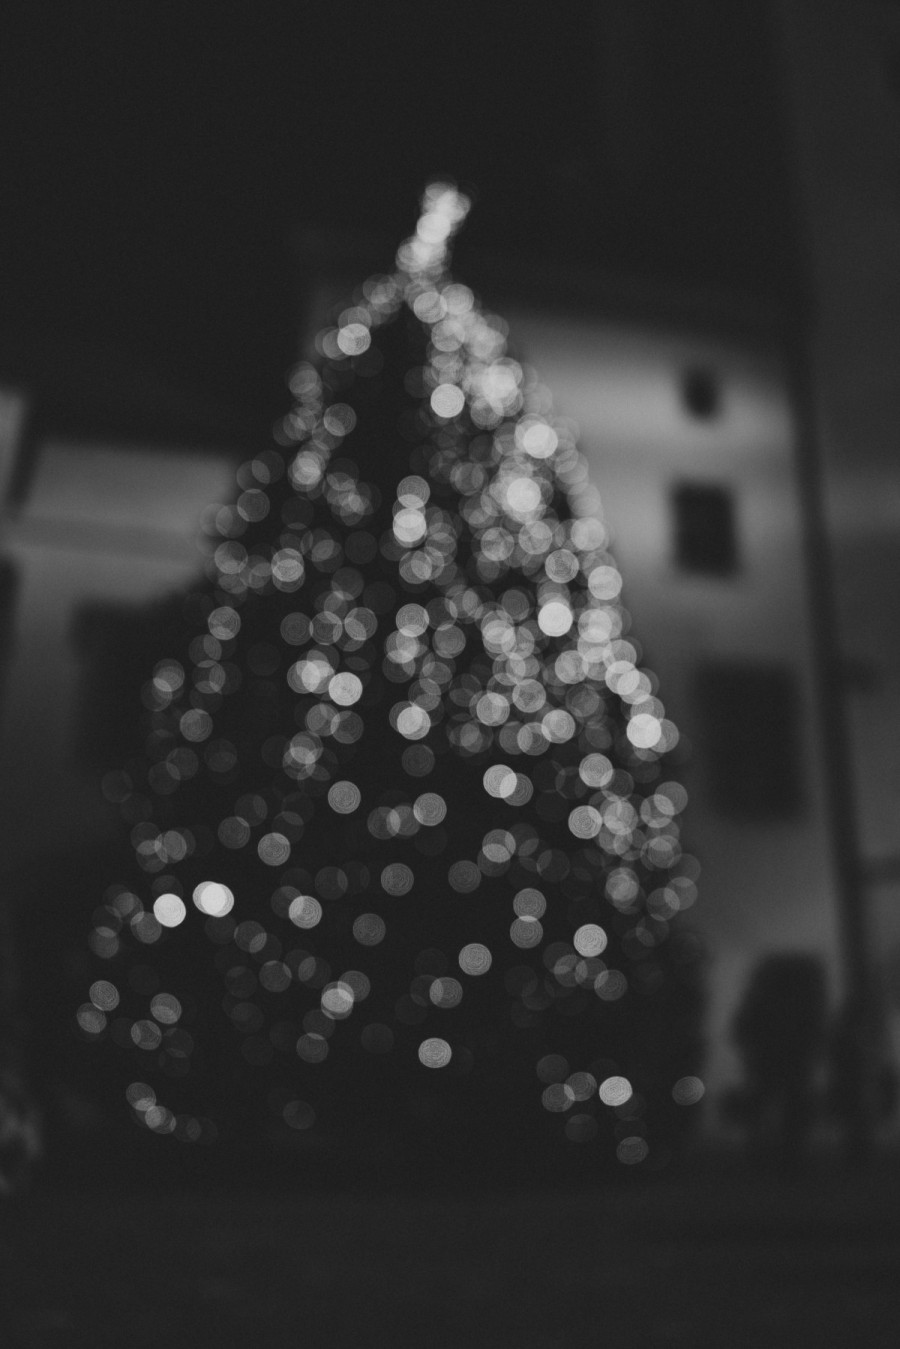 weihnachten_xmas_christmas_advent_weihnachtsbaum_tree_black_white-270849